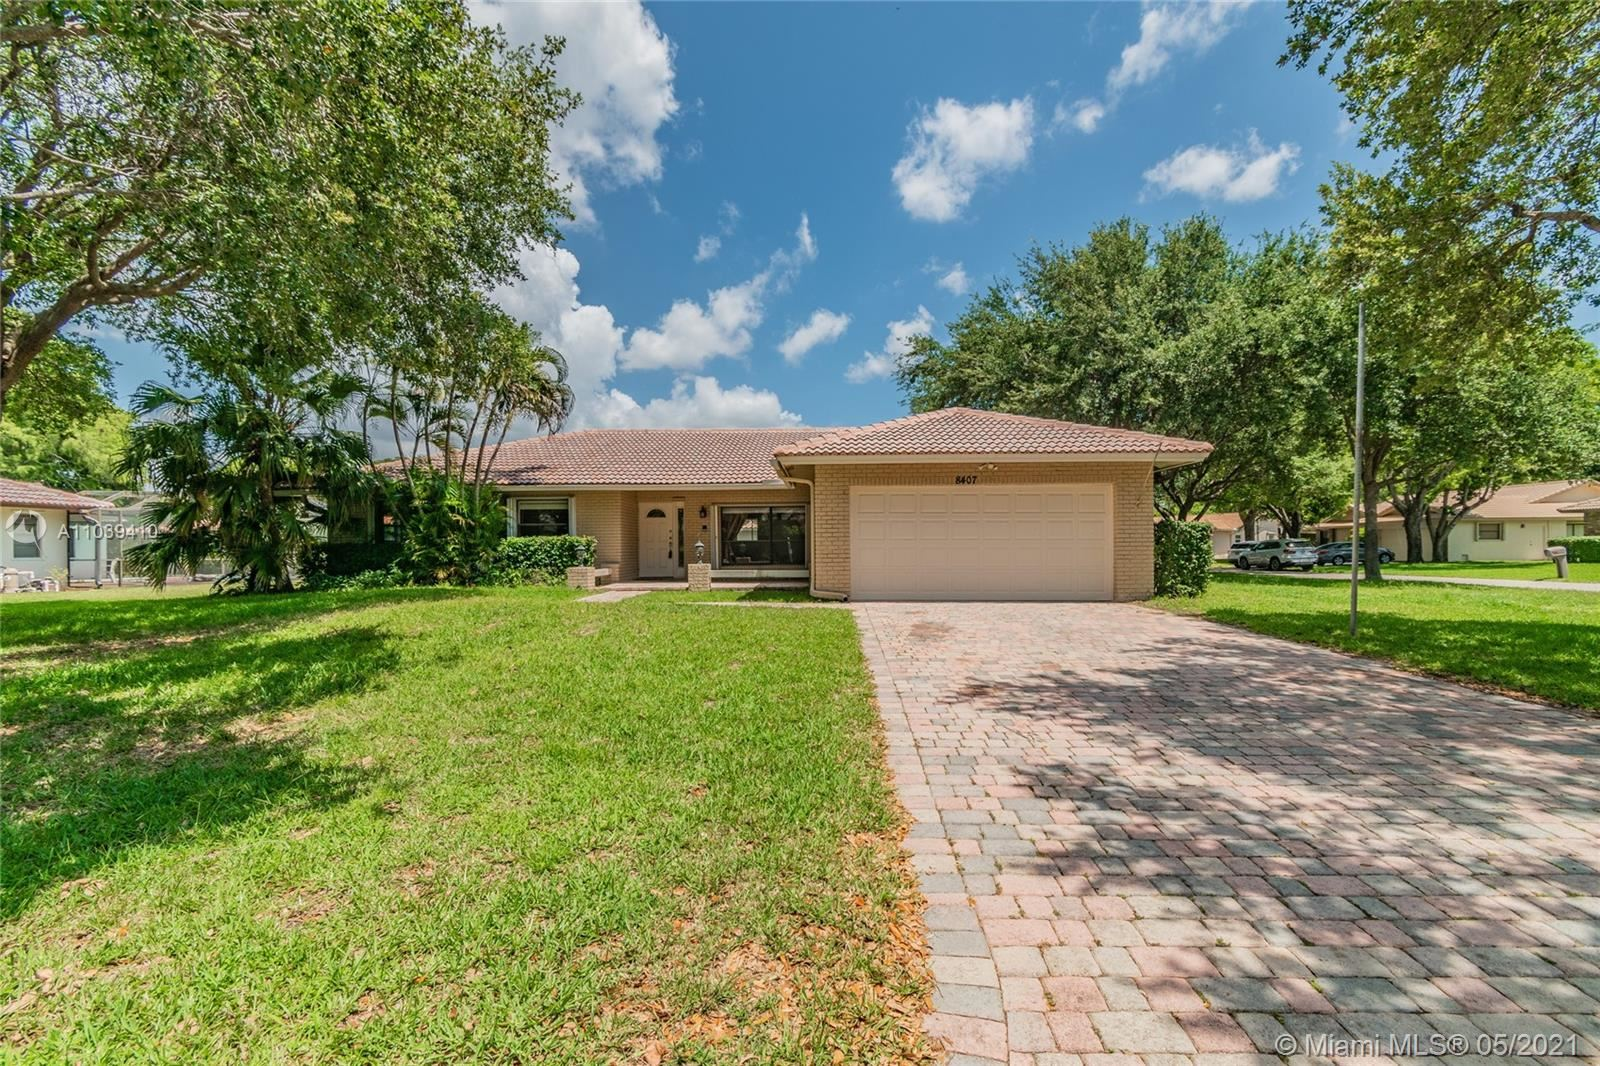 Photo of 8407 NW 2nd Mnr, Coral Springs, FL 33071 (MLS # A11039410)